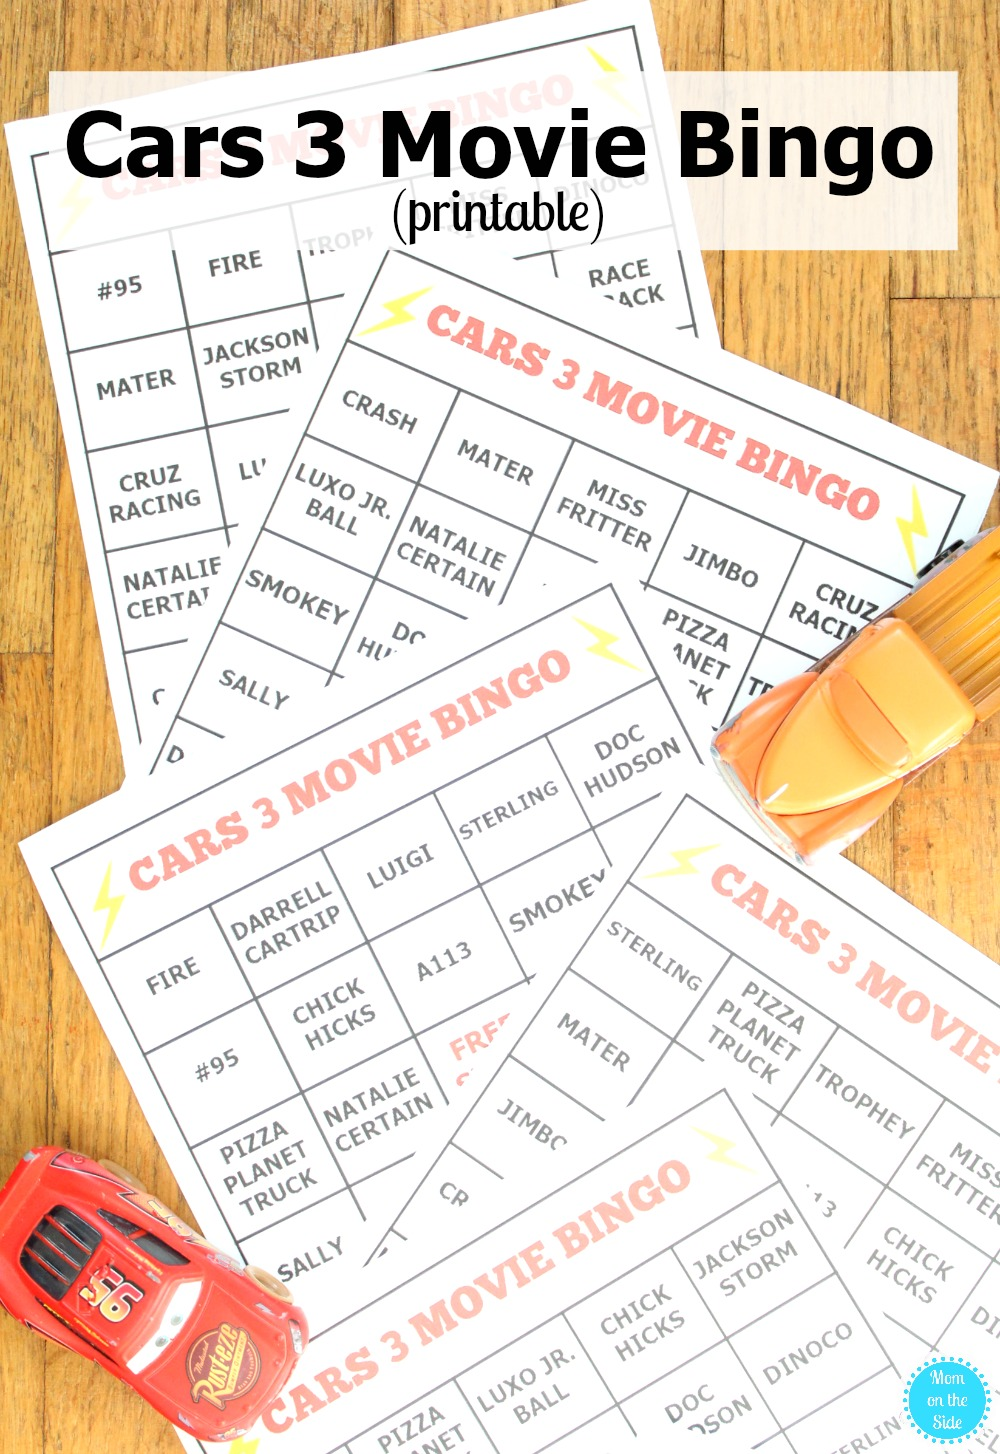 Printable Cars 3 Movie Bingo Cards for Family Movie Night